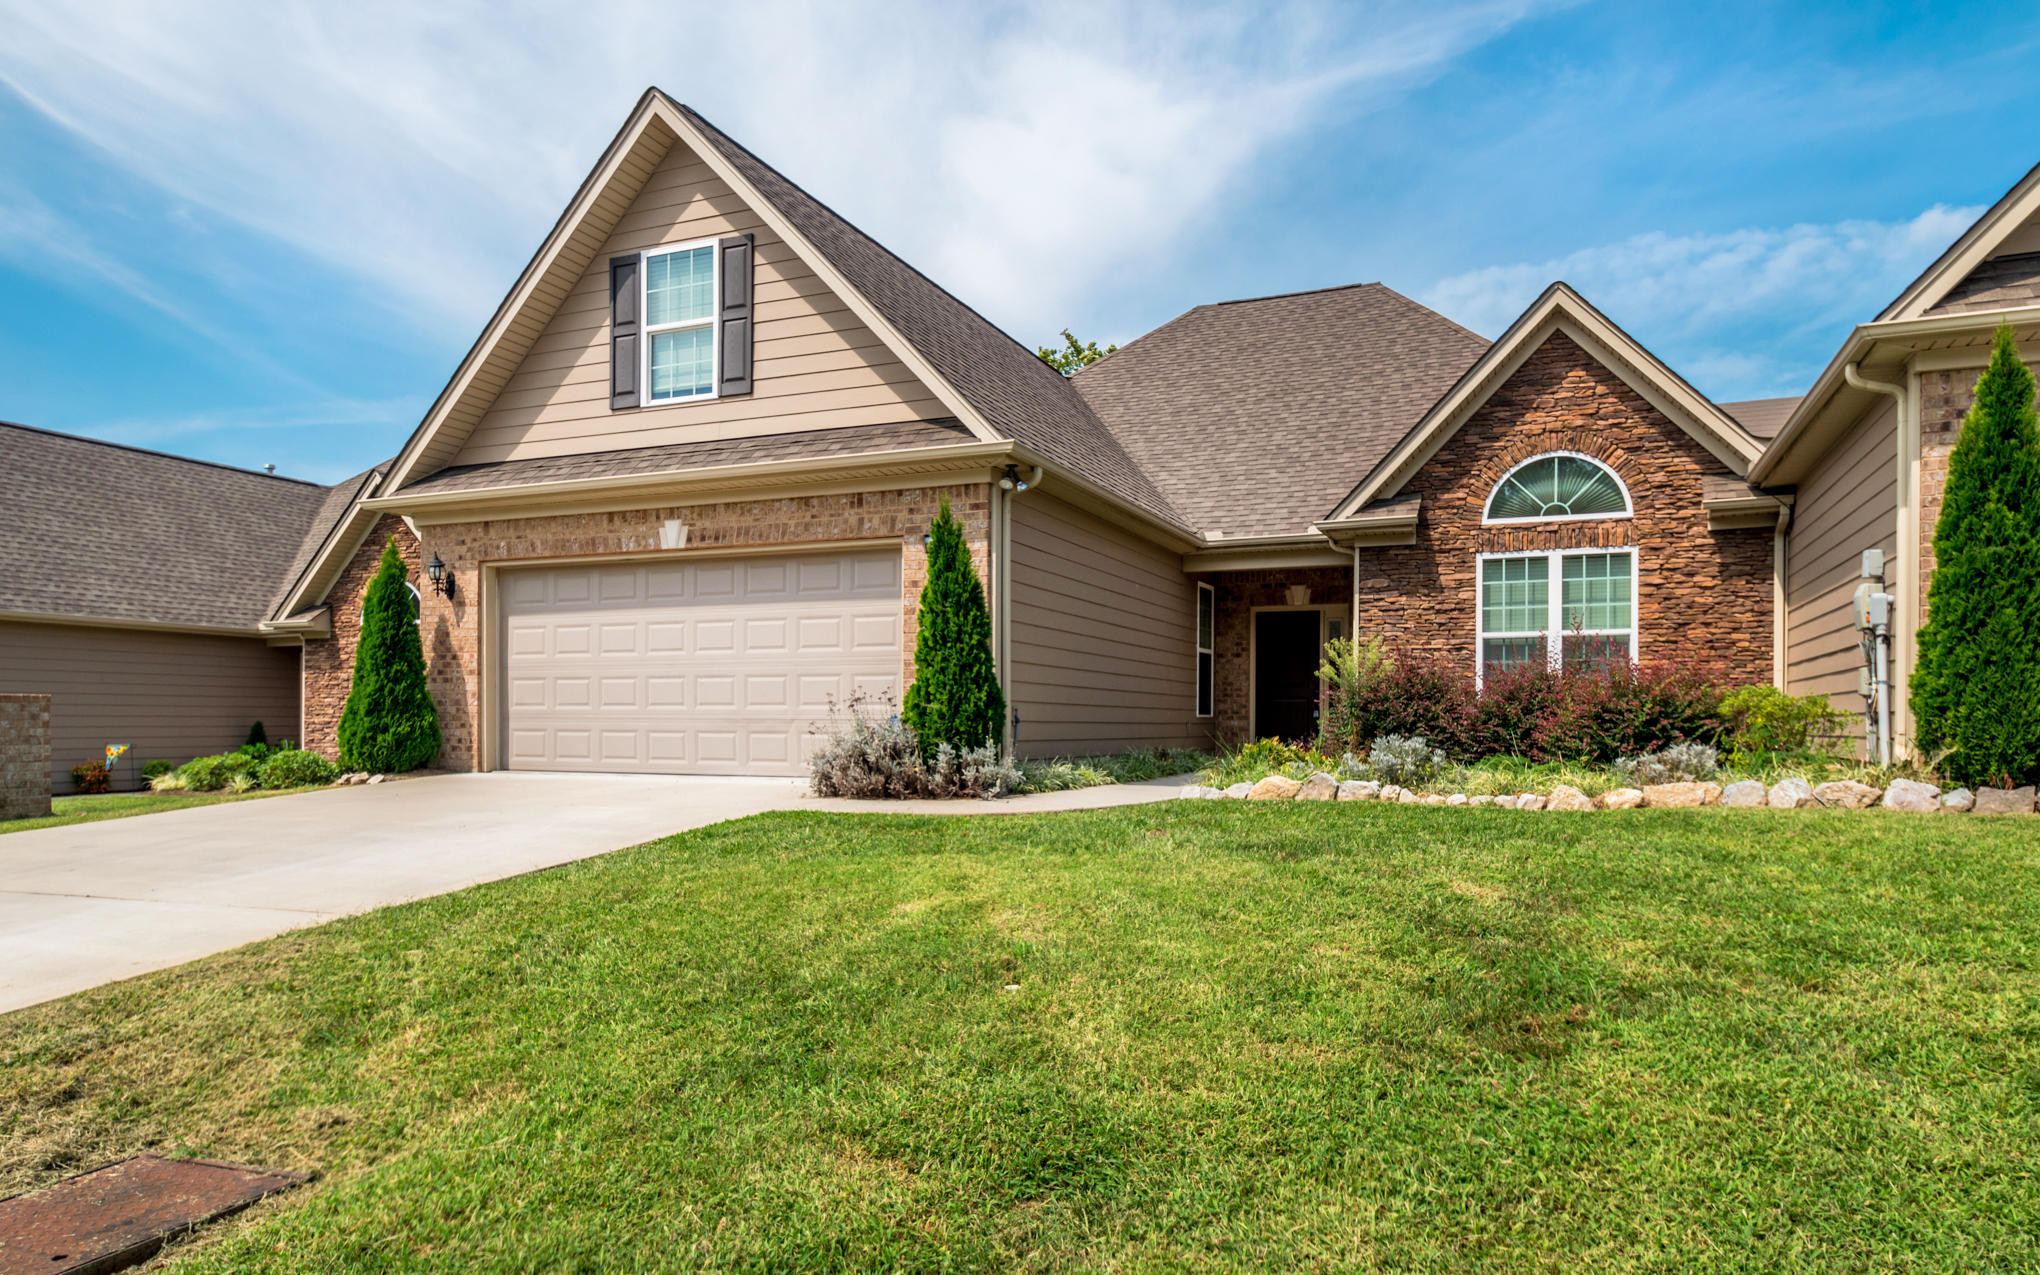 2783  Amsterdam  Ln 37421 - One of Chattanooga Homes for Sale